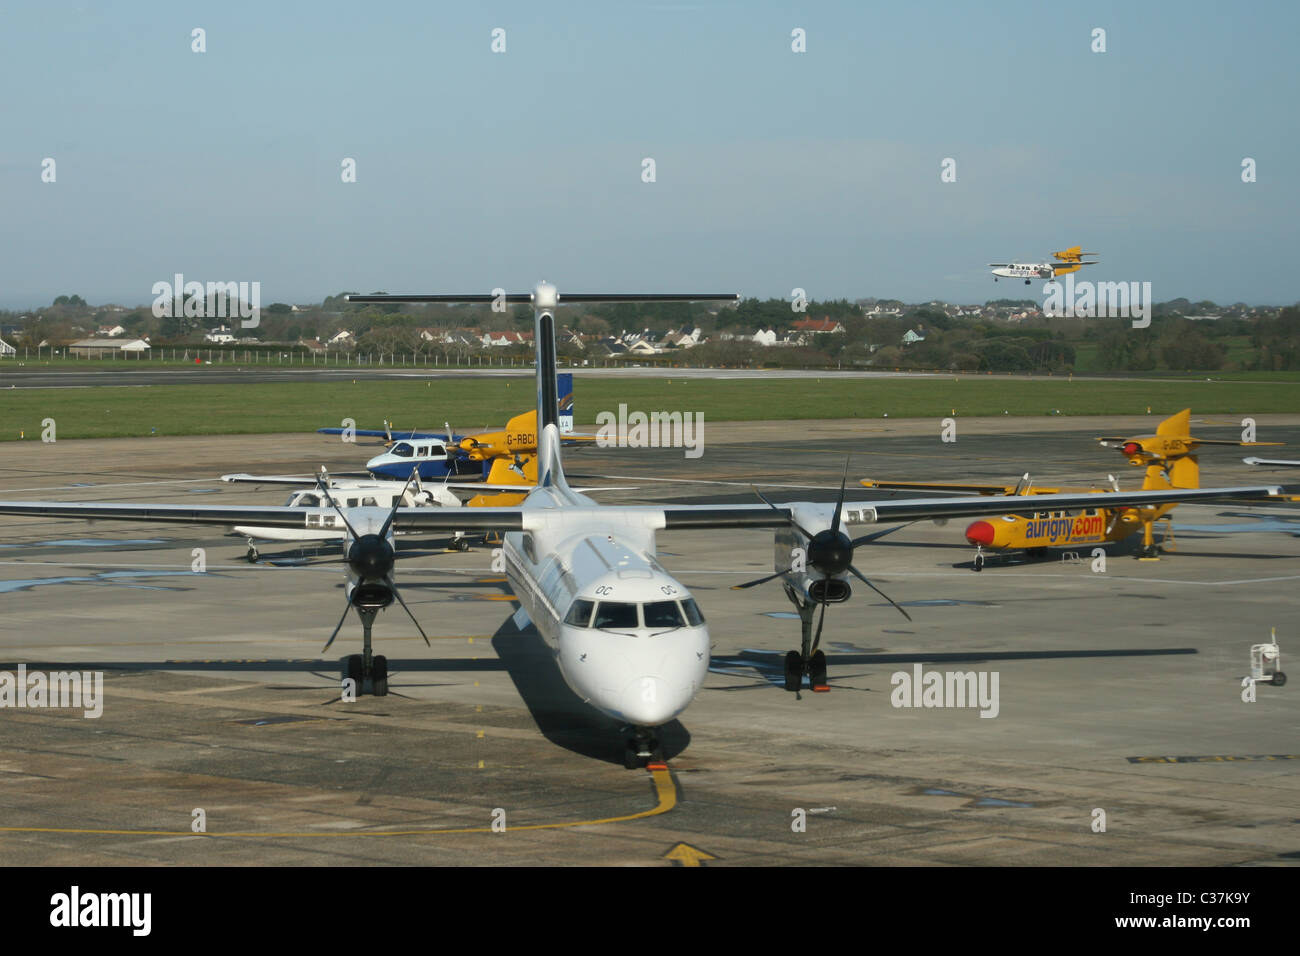 GUERNSEY AIRPORT - Stock Image